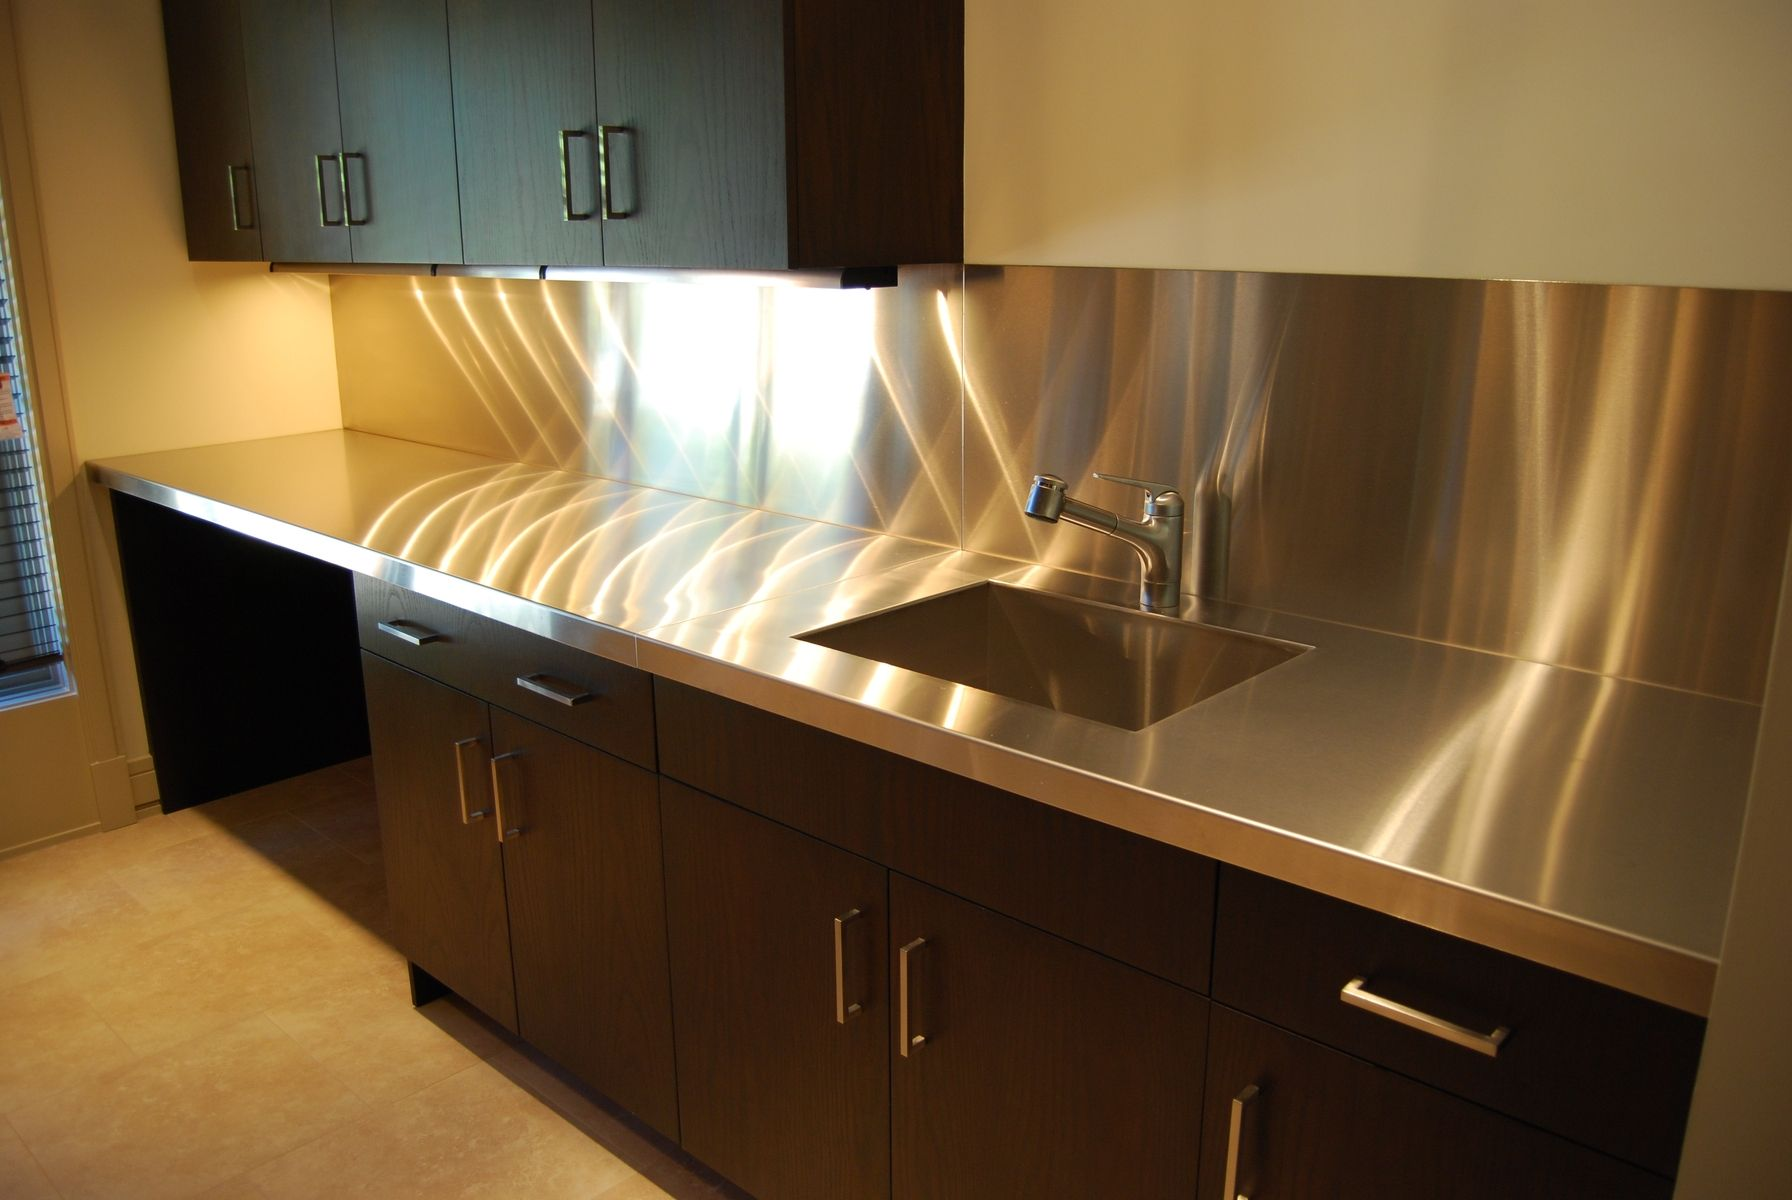 Hand Made Stainless Steel Countertops Love Love Love Thick Stainless Steel Countertops Stainless Steel Countertops Countertops Home Kitchens